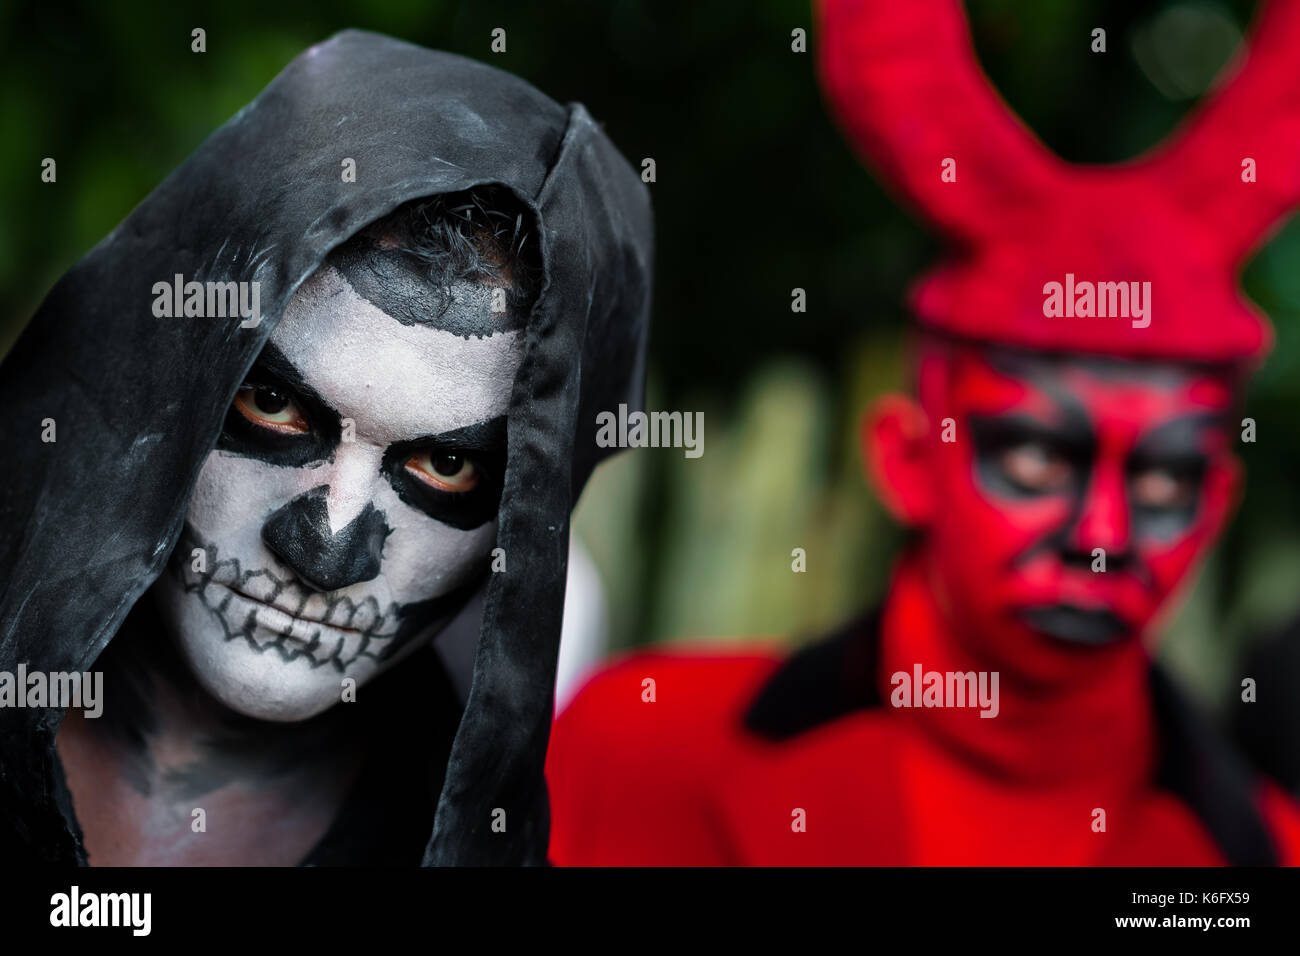 A young Salvadoran man with skull face paint takes part in the La Calabiuza parade at the Day of the Dead celebration in Tonacatepeque, El Salvador, 1 - Stock Image